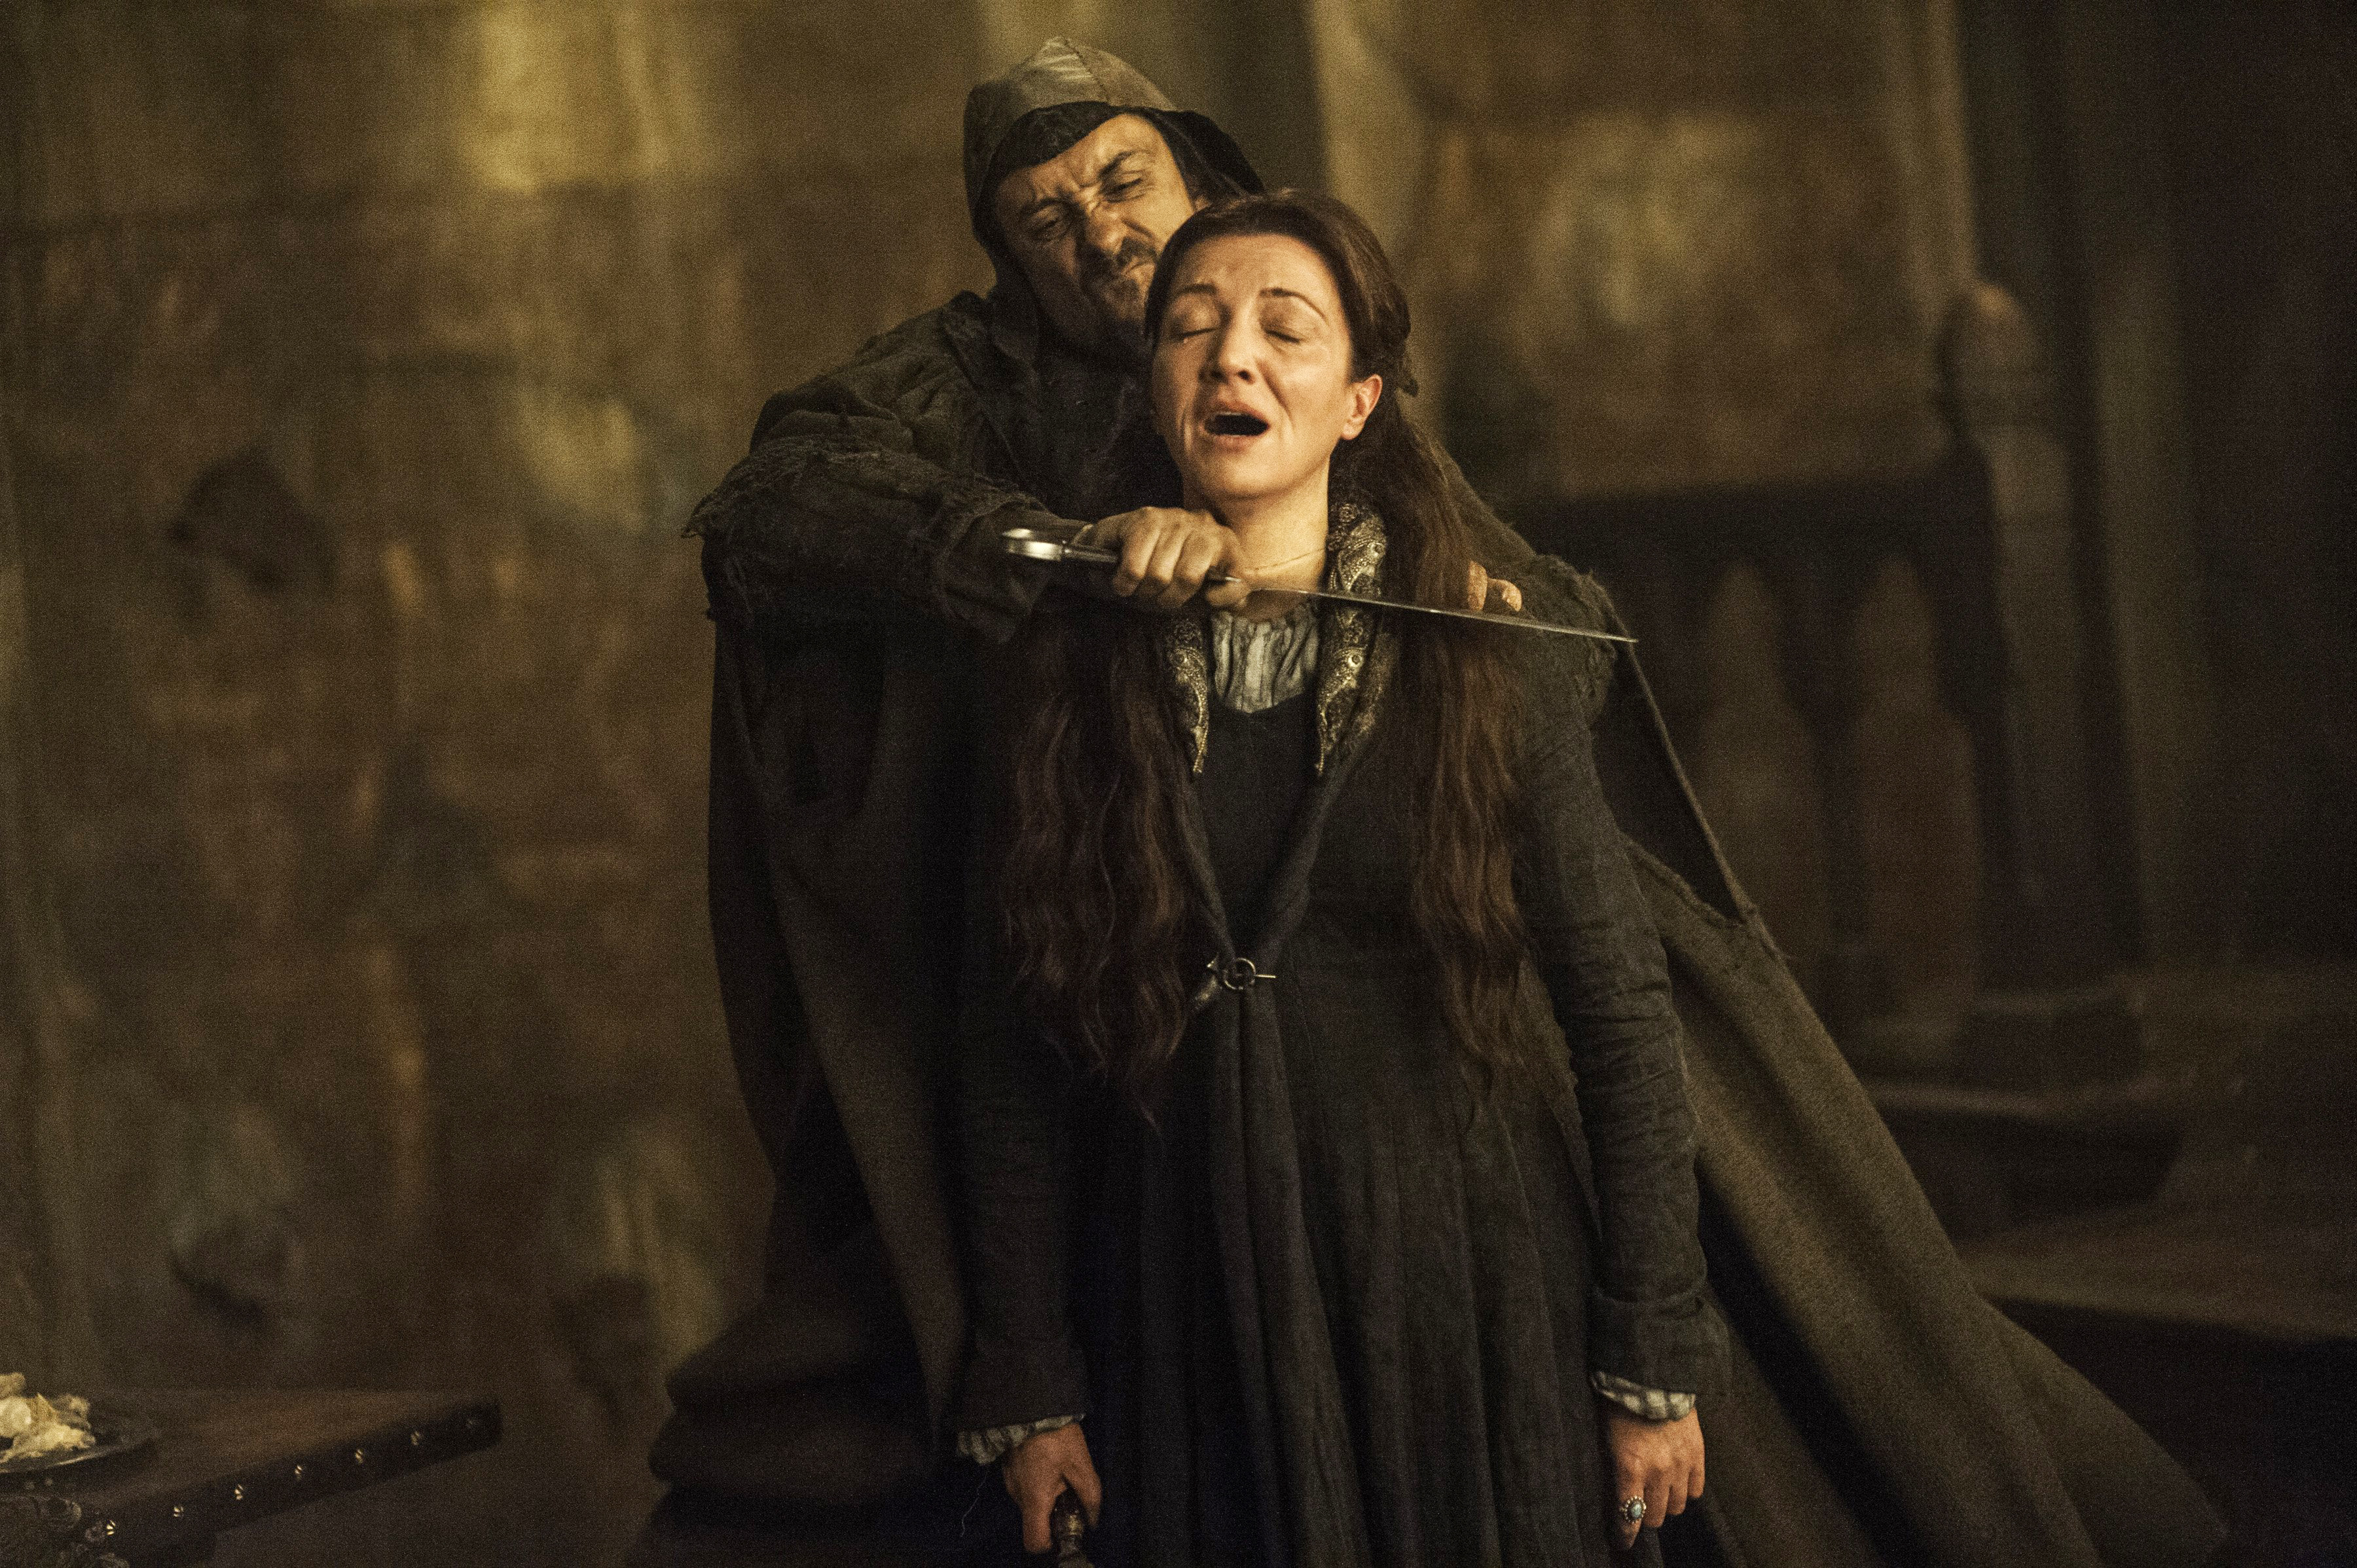 Watch There's a mind-blowing Game of Thrones death pattern that we all missed video